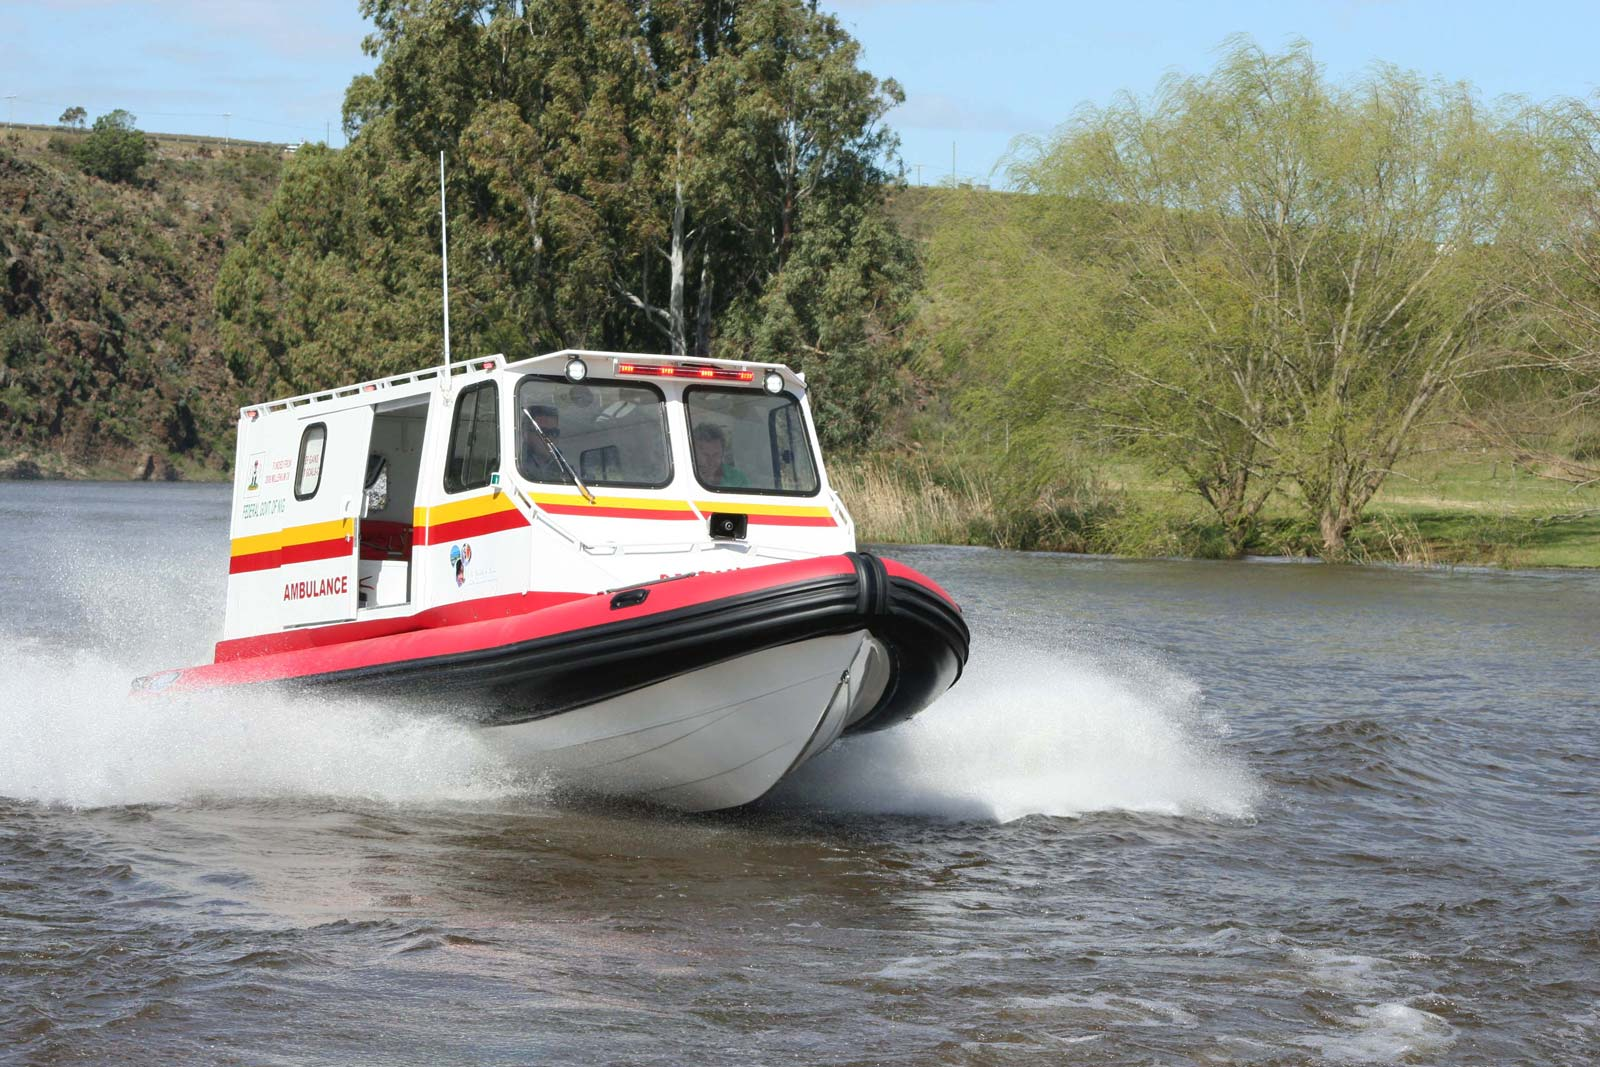 Intex Inflatable Boats South Africa